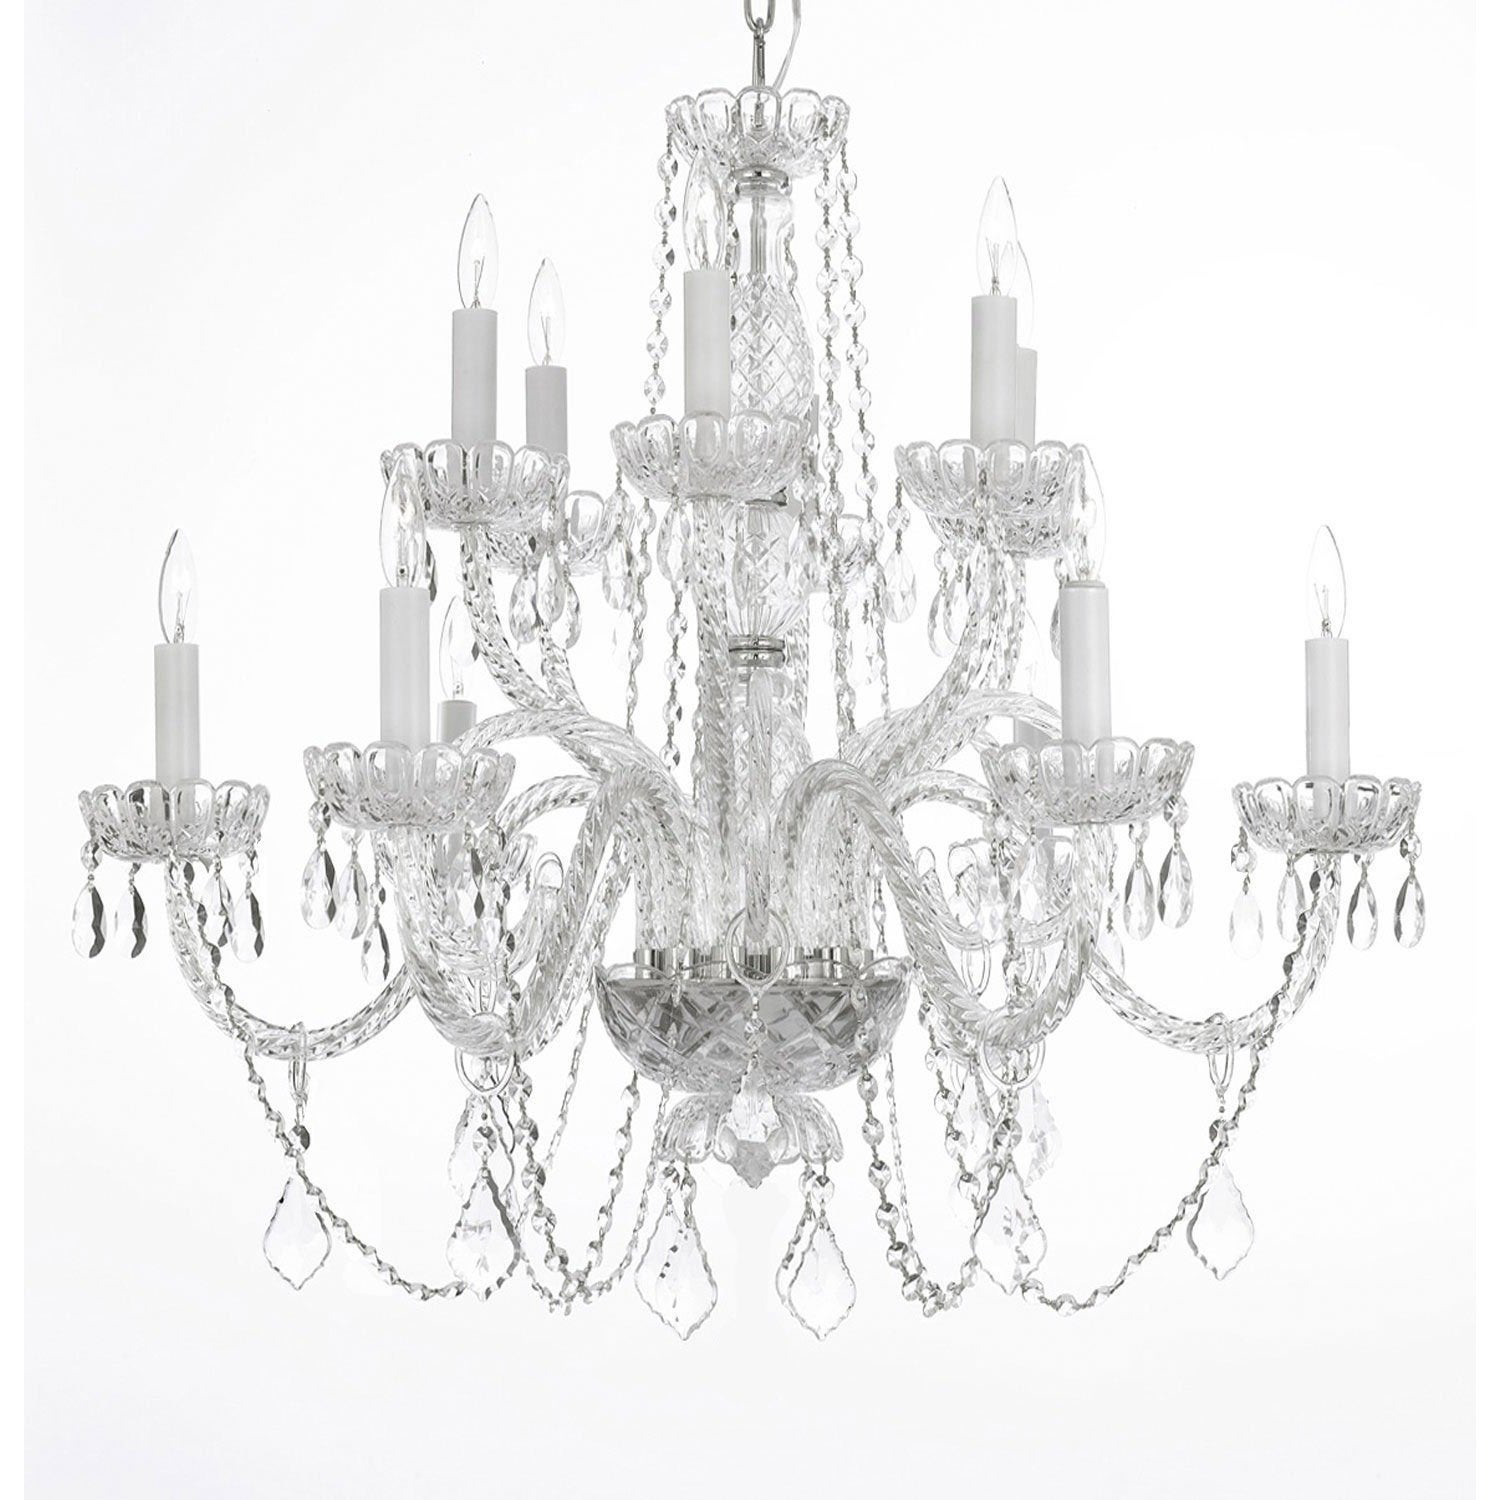 12-Light Large Crystal Chandelier $250